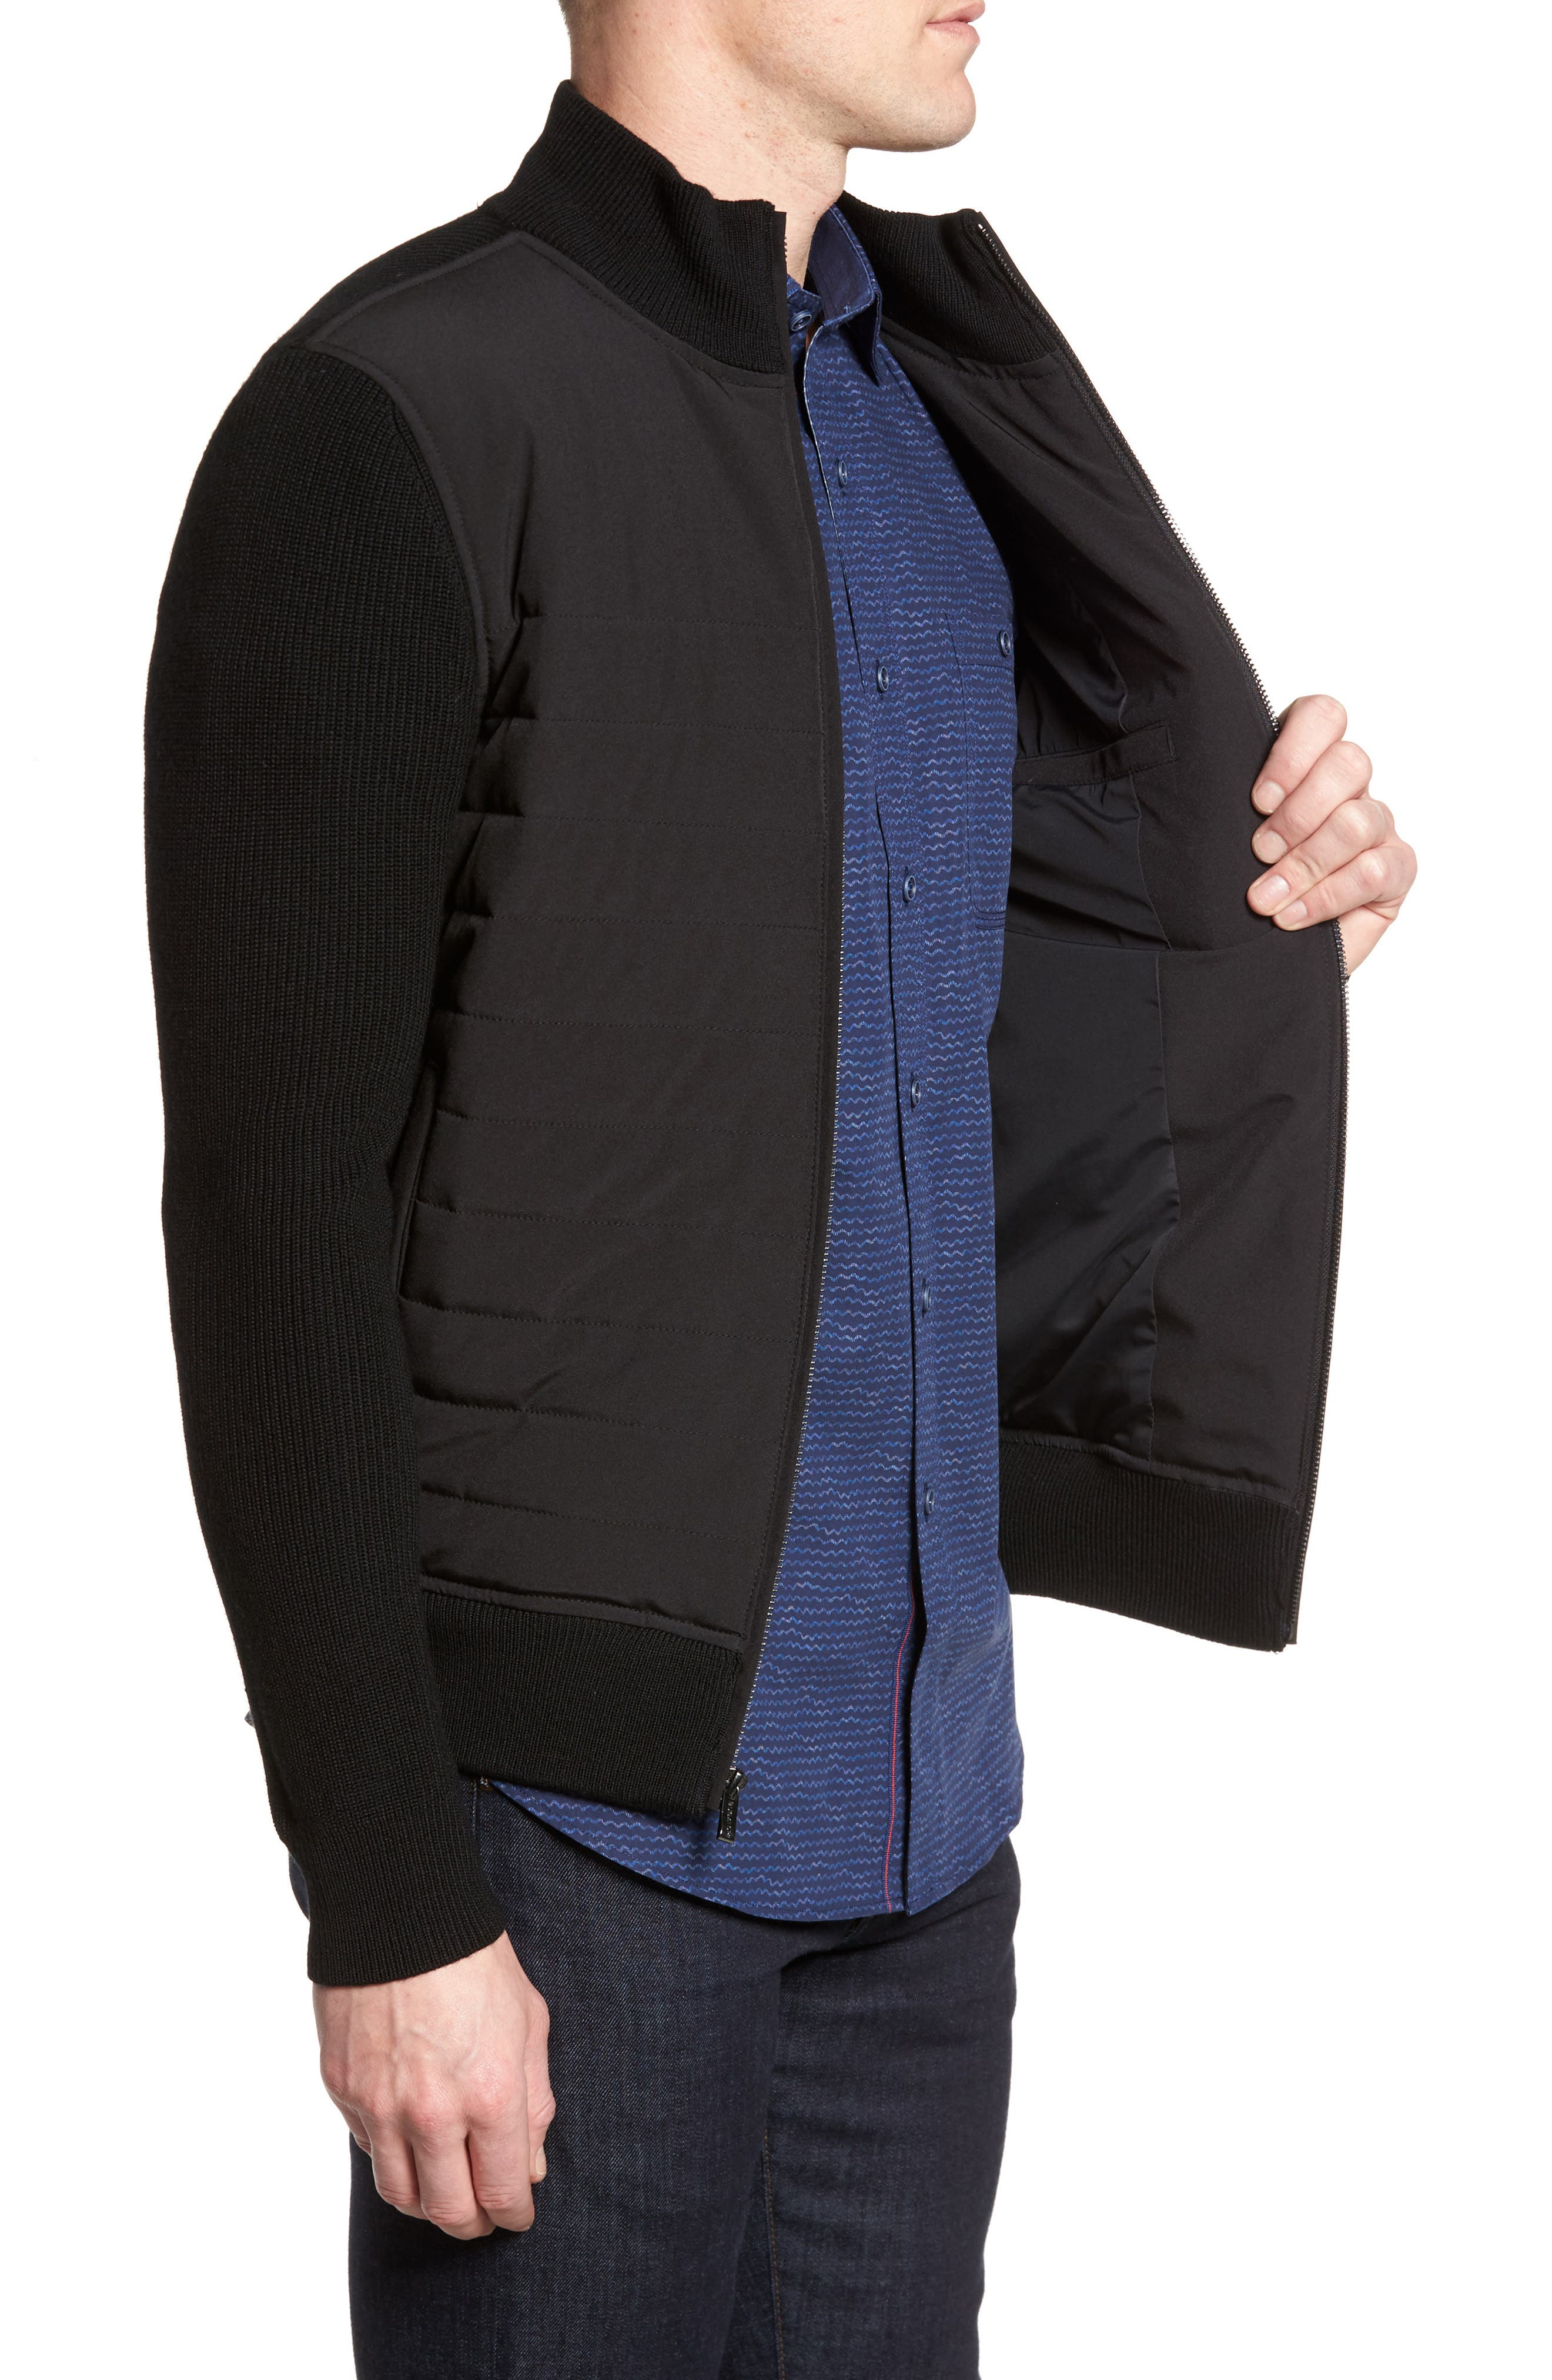 Quilted Front Wool Zip Front Sweater Jacket,                             Alternate thumbnail 3, color,                             Black